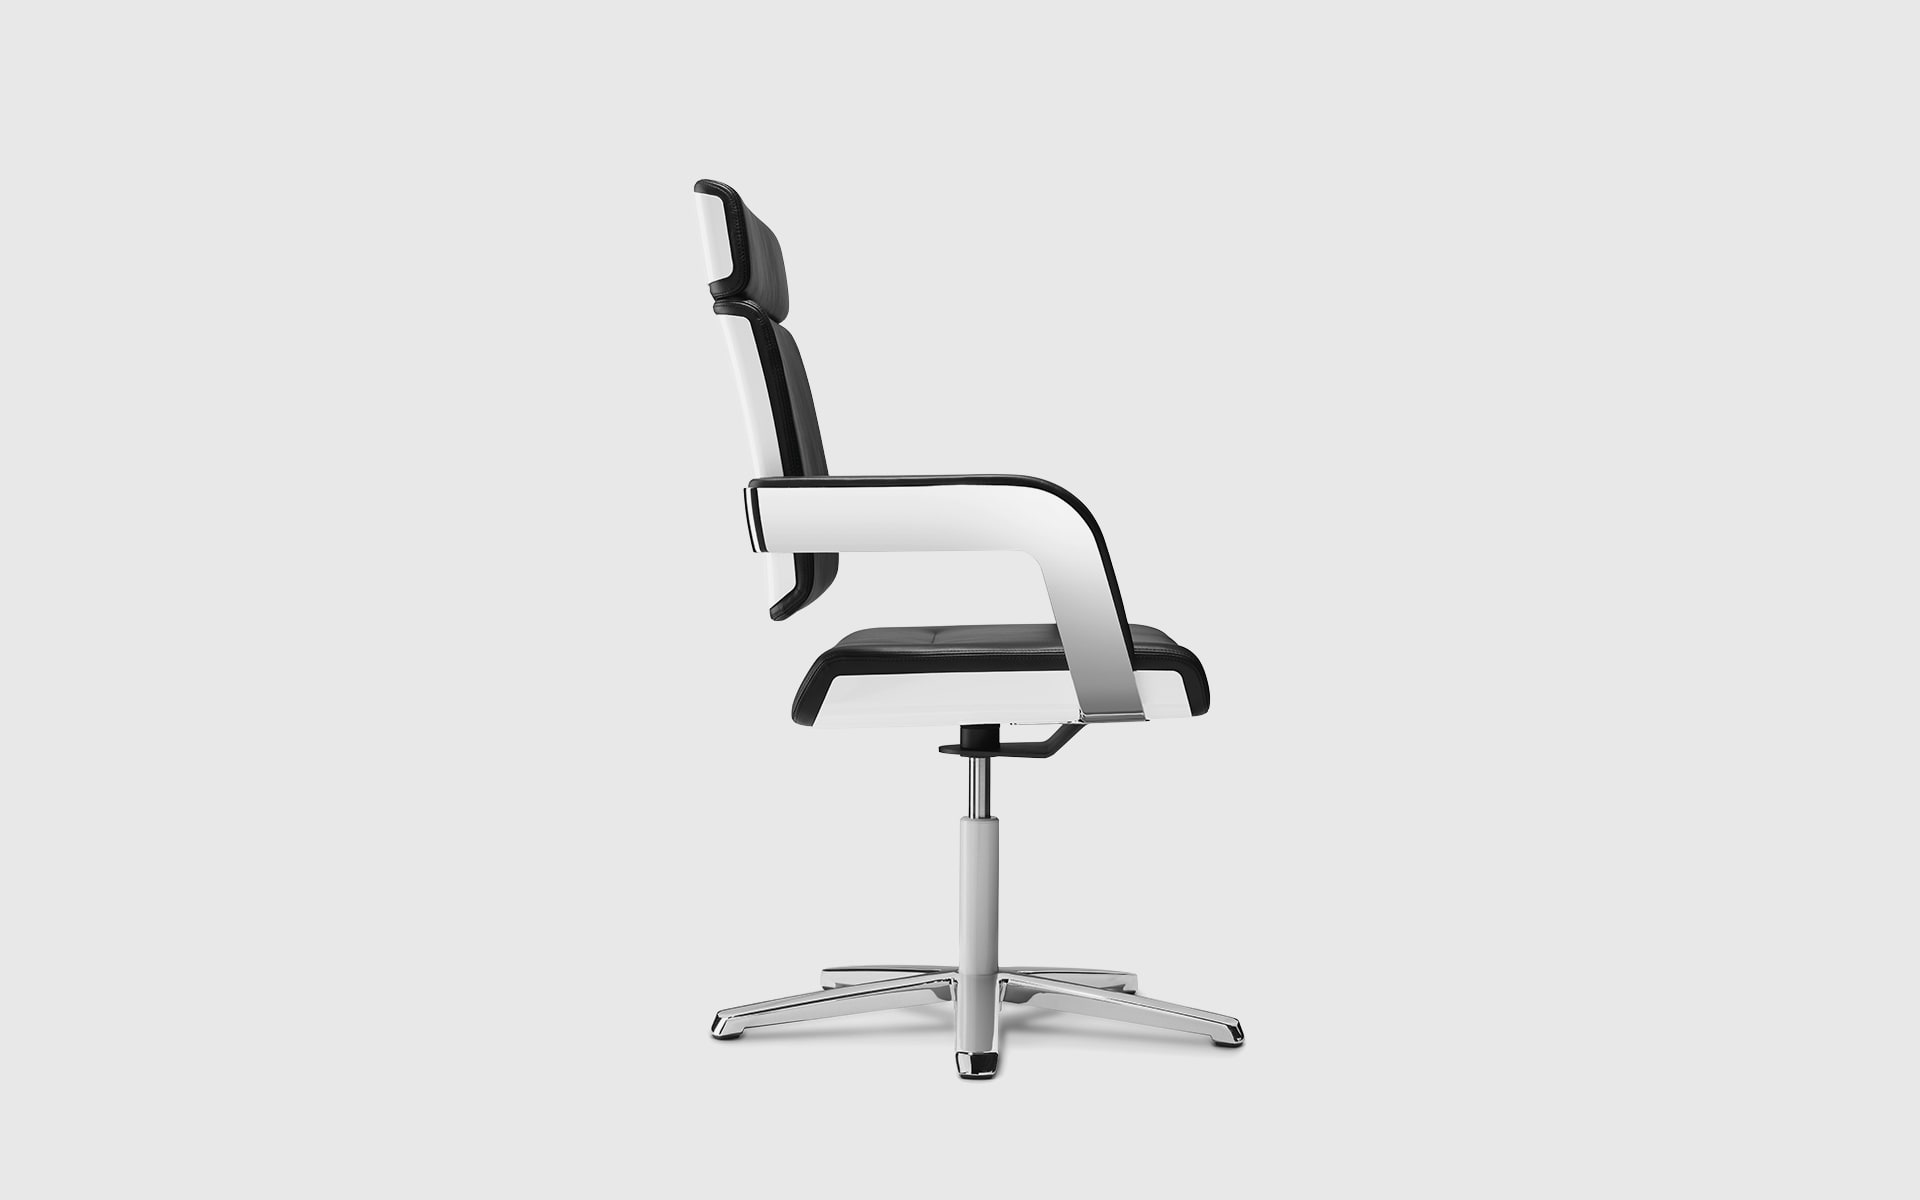 Black-and-white K+N Charta conference chair by ITO Design